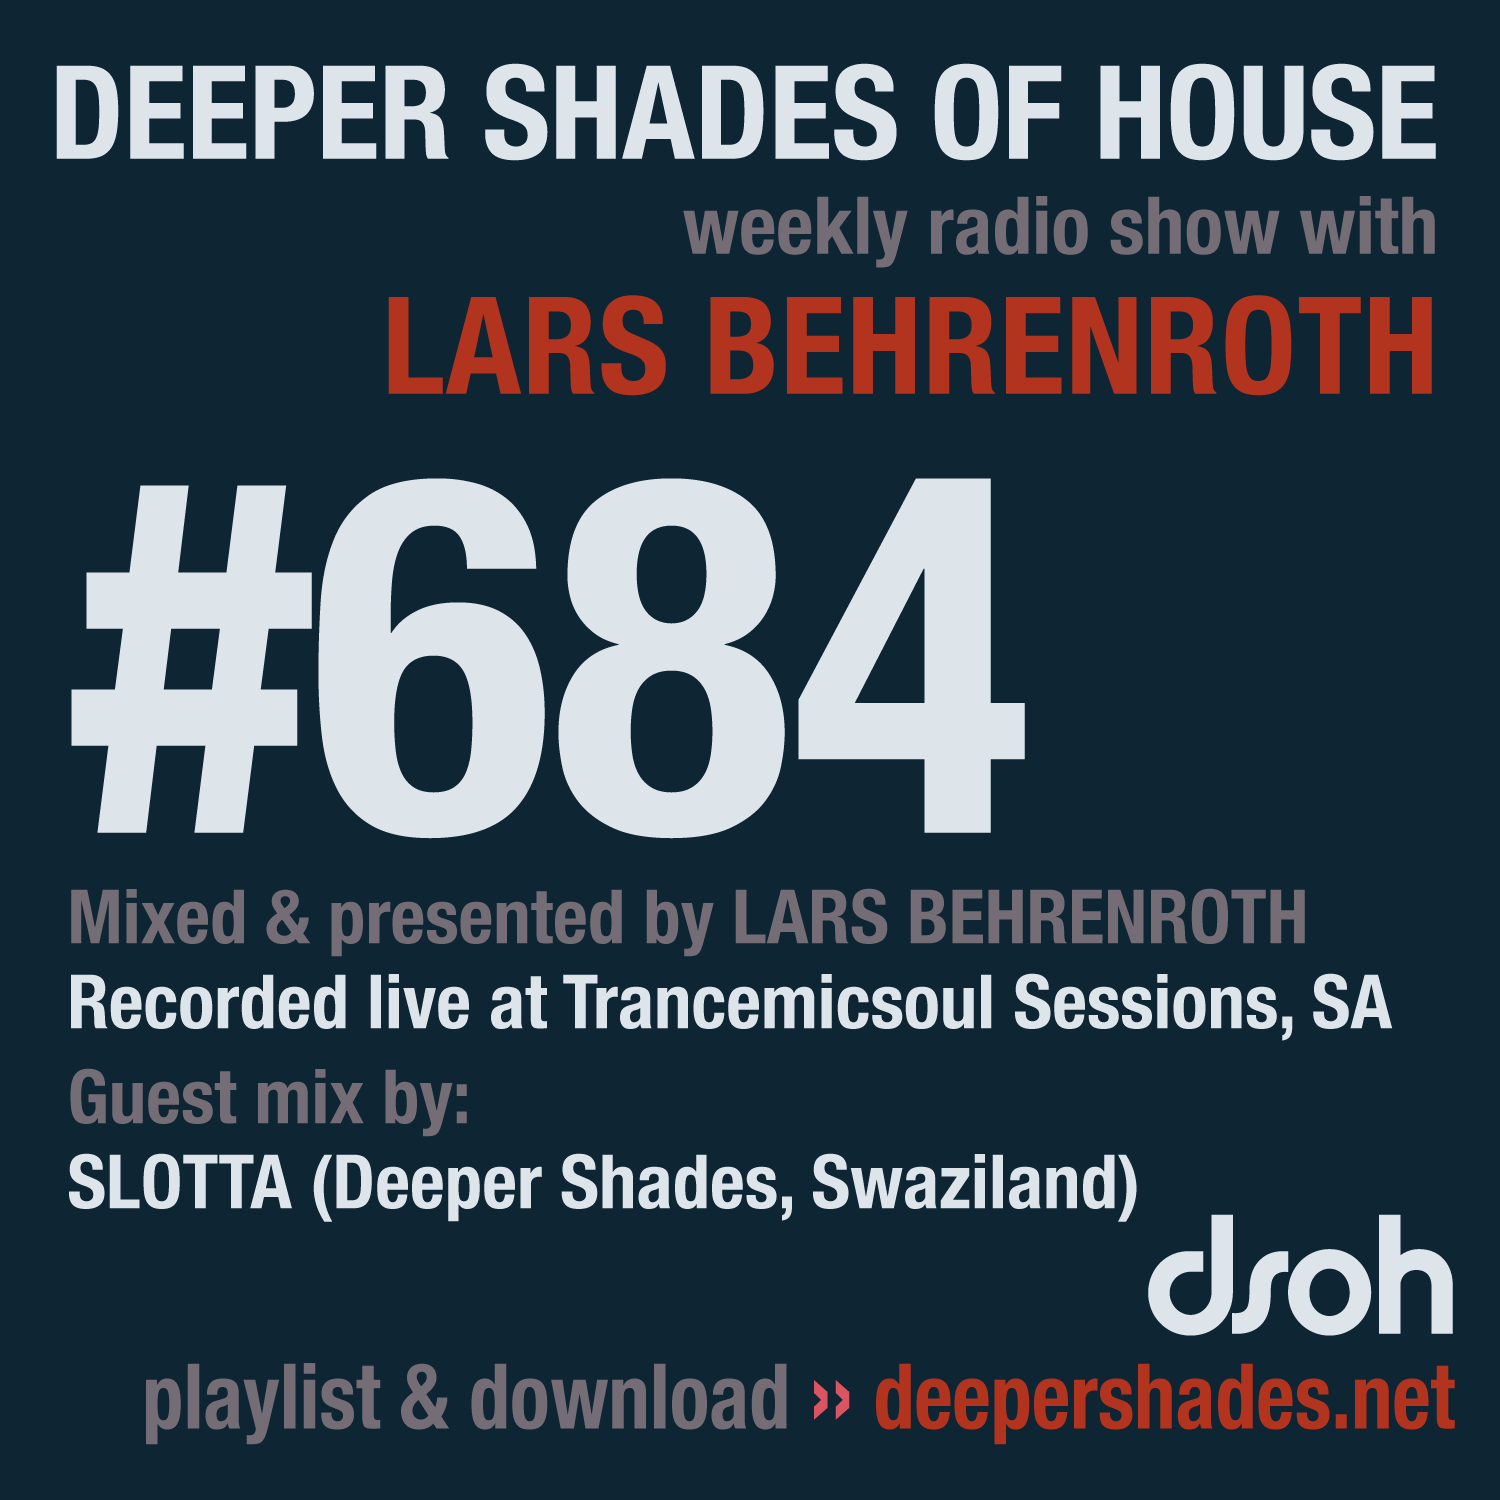 Deeper Shades Of House 684